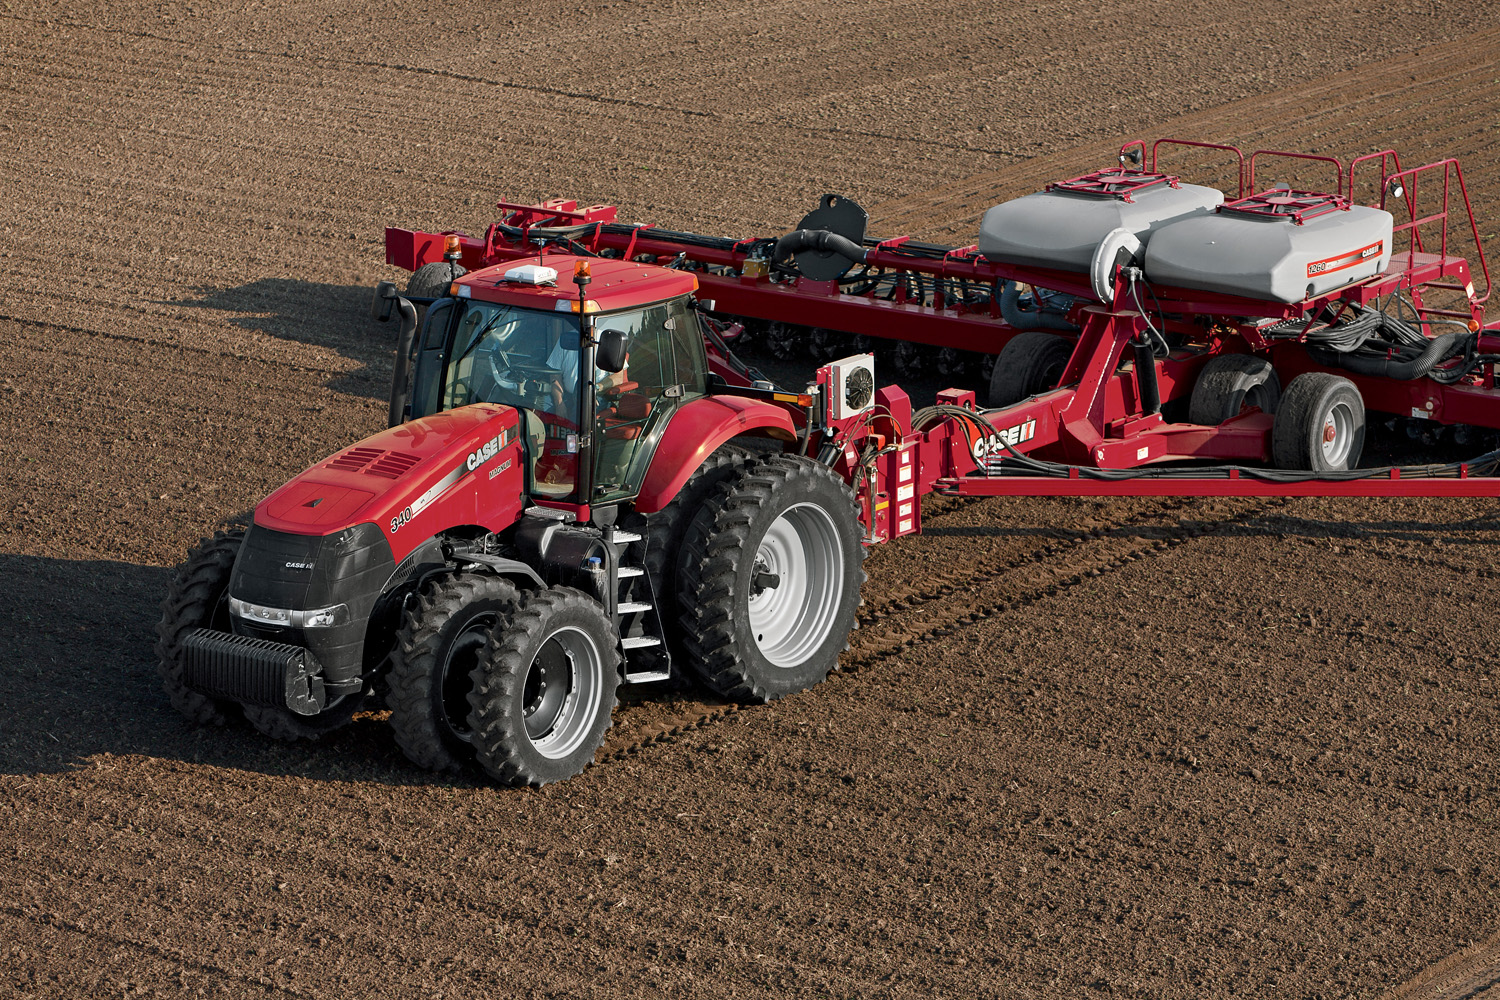 2012-3-1_Case_IH_Leads_the_Industry_With_Efficient_Power_Using_SCR_Technology_Magnum_Medium_Res.jpg (958 KB)